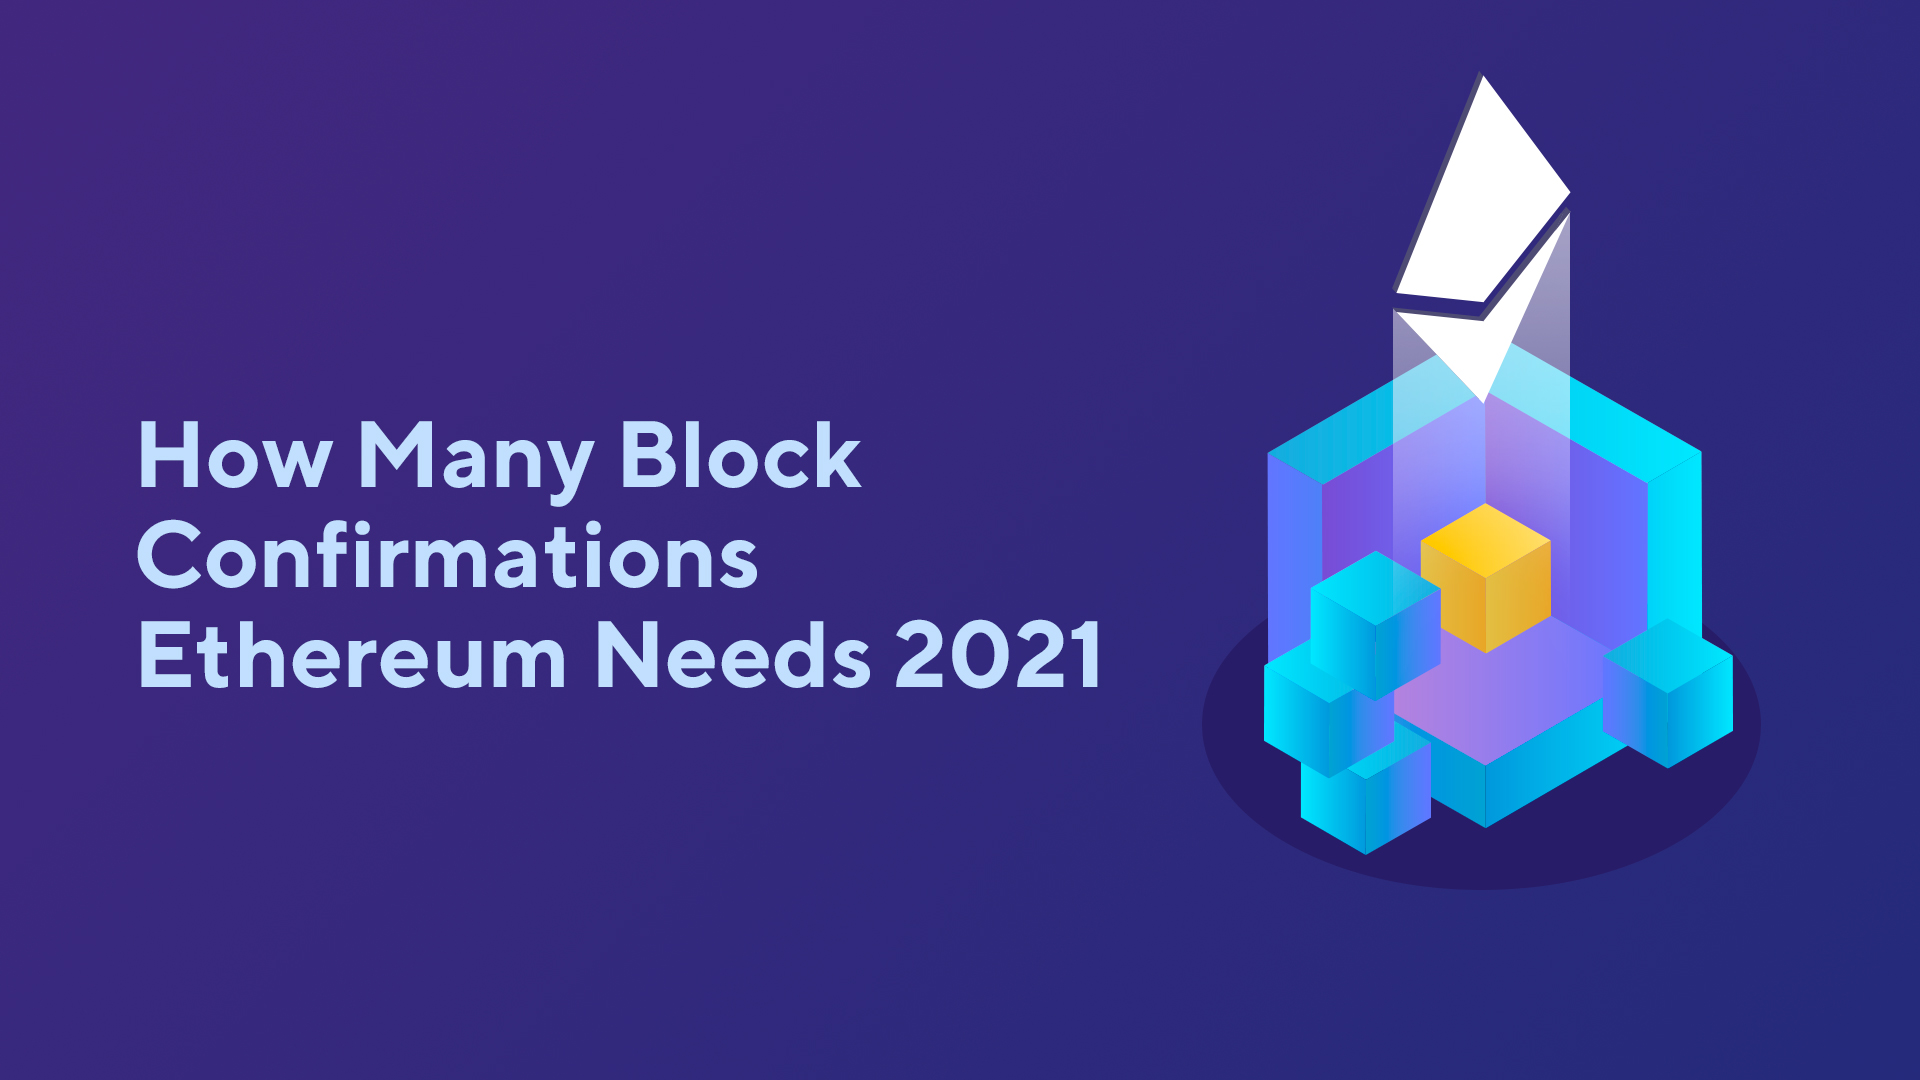 How Many Block Confirmations Ethereum Needs 2021